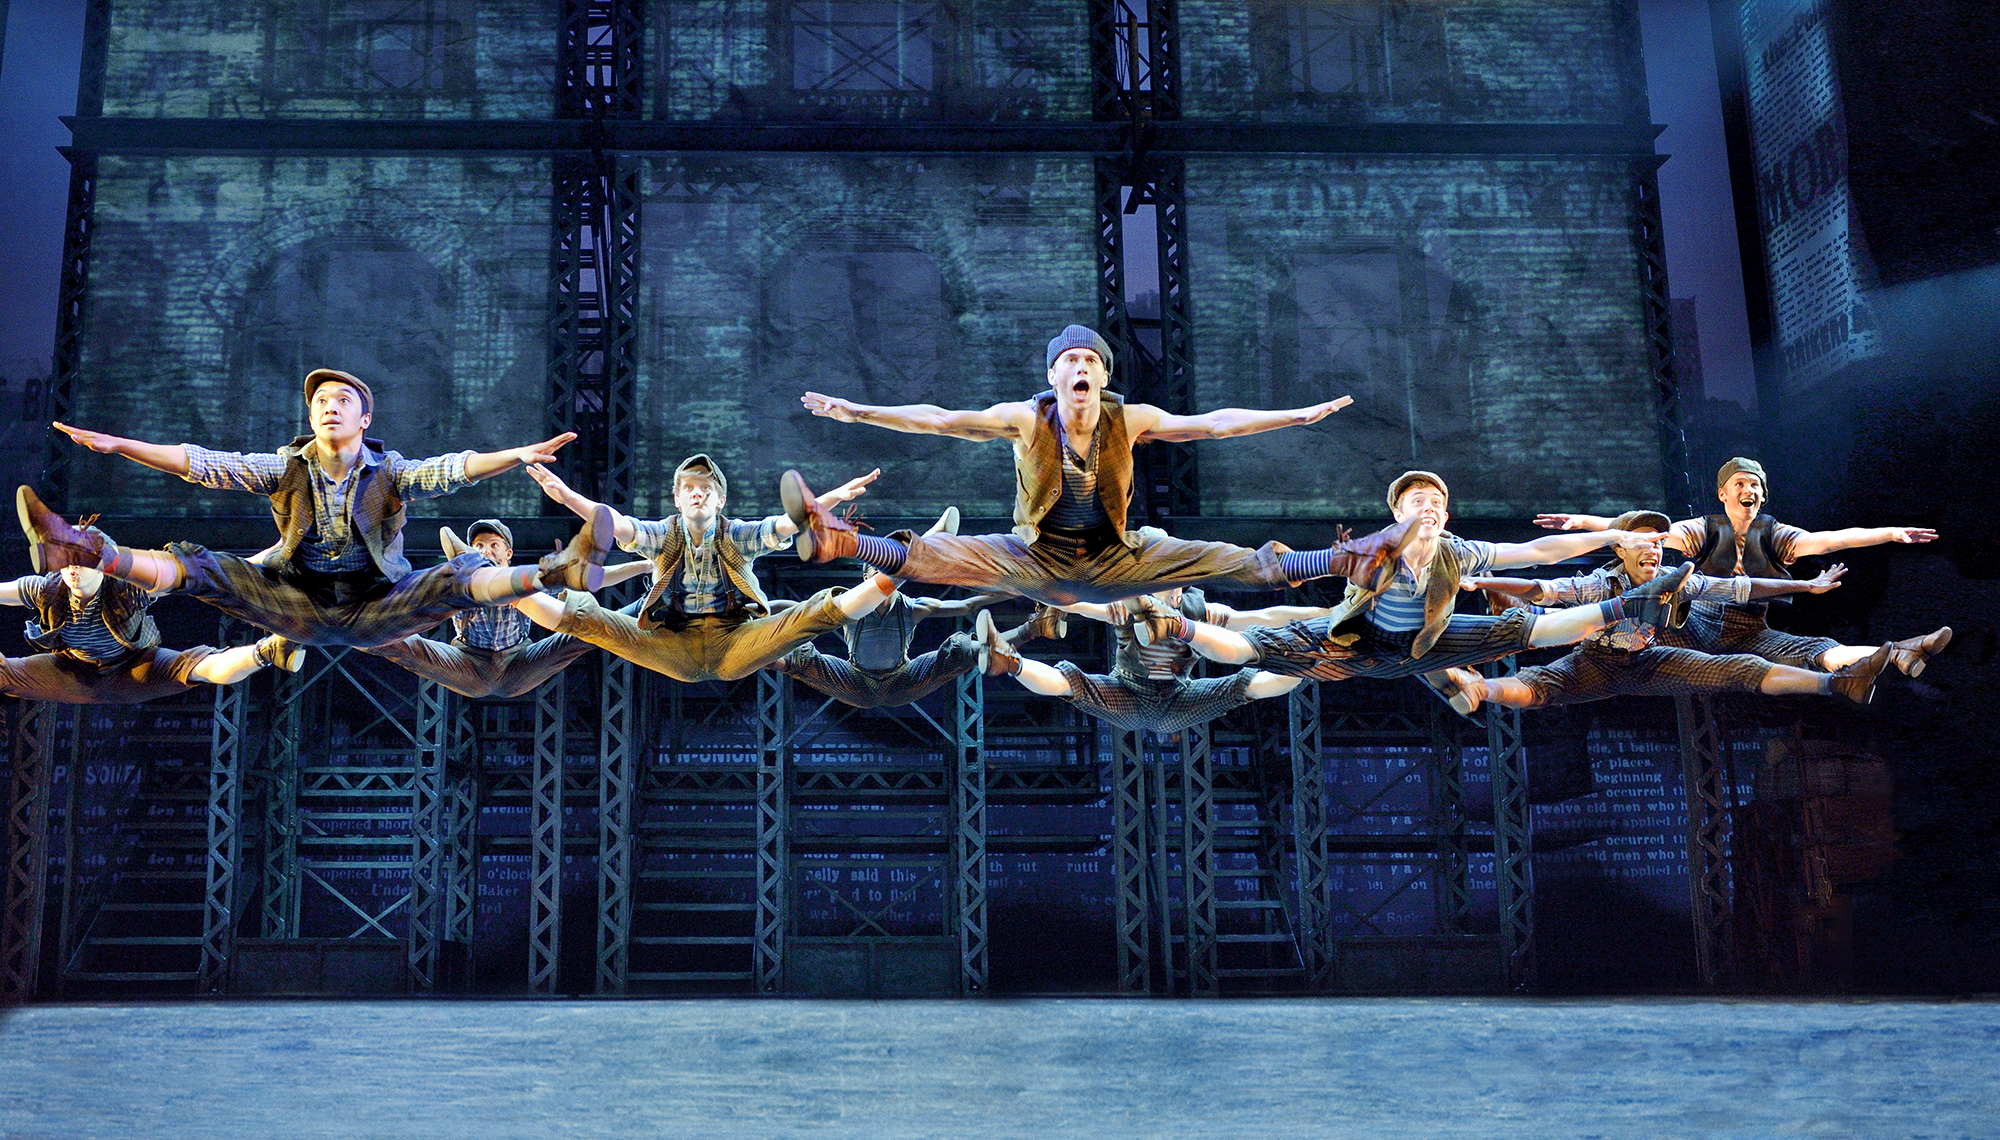 Newsies, a Disney Theatrical Production under the direction of Thomas Schumacher presents Newsies, music by Alan Menken, lyrics by Jack Feldman, book by Harvey Fierstein, starring Dan Deluca (Jack Kelly), Steve Blanchard (Joseph Pulitzer), Stephanie Styles (Katherine Plumber), Angela Grovey (Medda), Jacob Kemp (Davey), Zachary Sayle (Crutchie), Anthony Rosenthal or Vincent Crocilla (Les) and Matthew J. Schechter (Les) under the direction of Jeff Calhoun, choreographed by Christopher Gattelli, North American Tour premiere Thursday October 30 Philadelphia